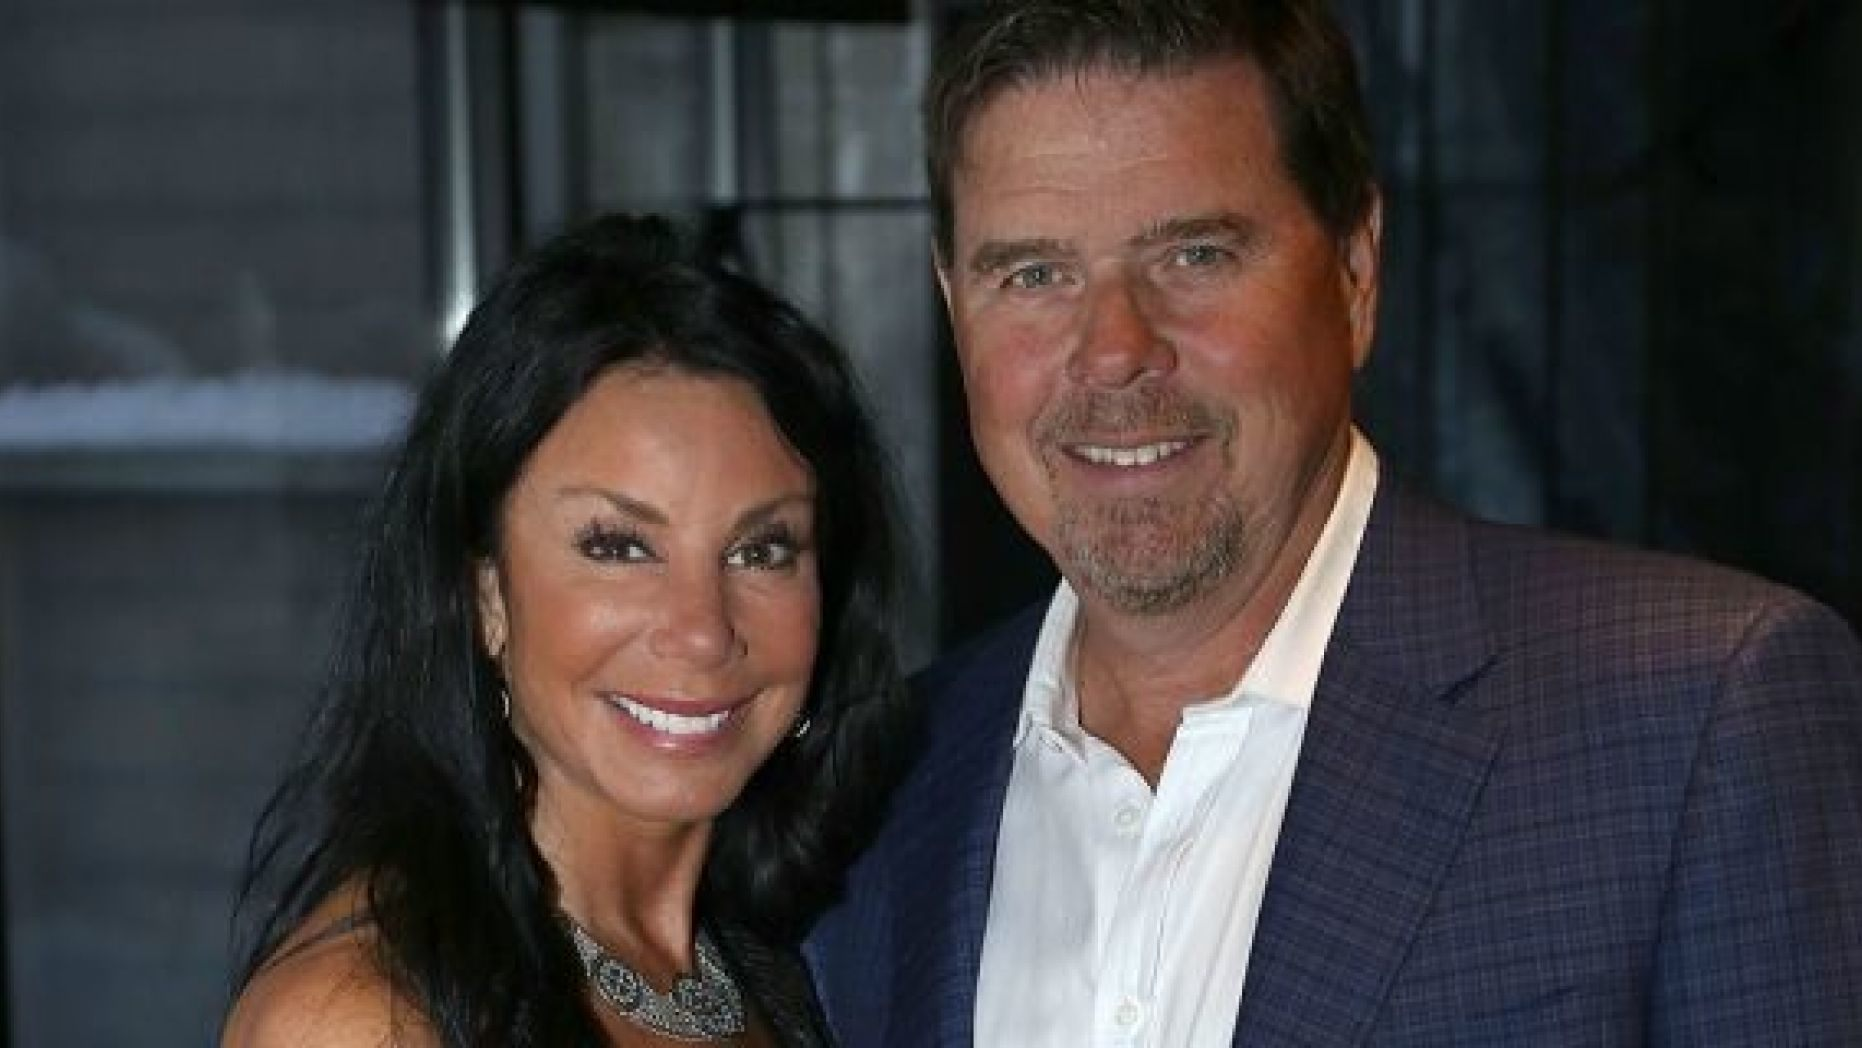 Danielle Staub postpones wedding to Oliver Maier